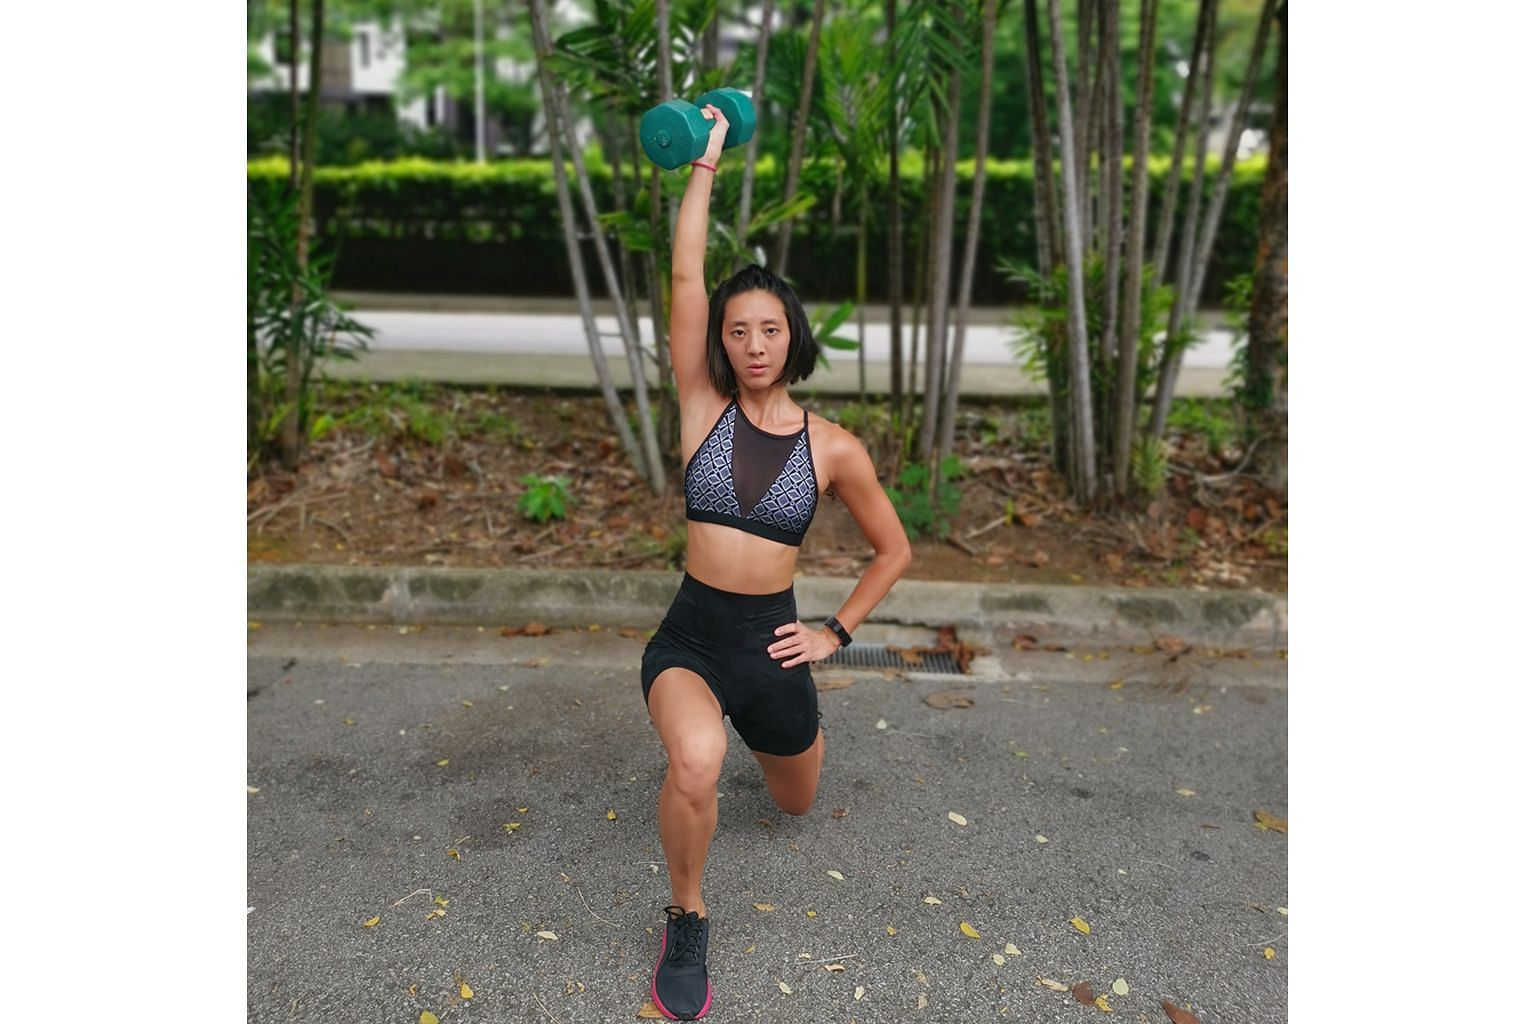 Ms Michelle Tan has been working out at home more during the circuit breaker period.